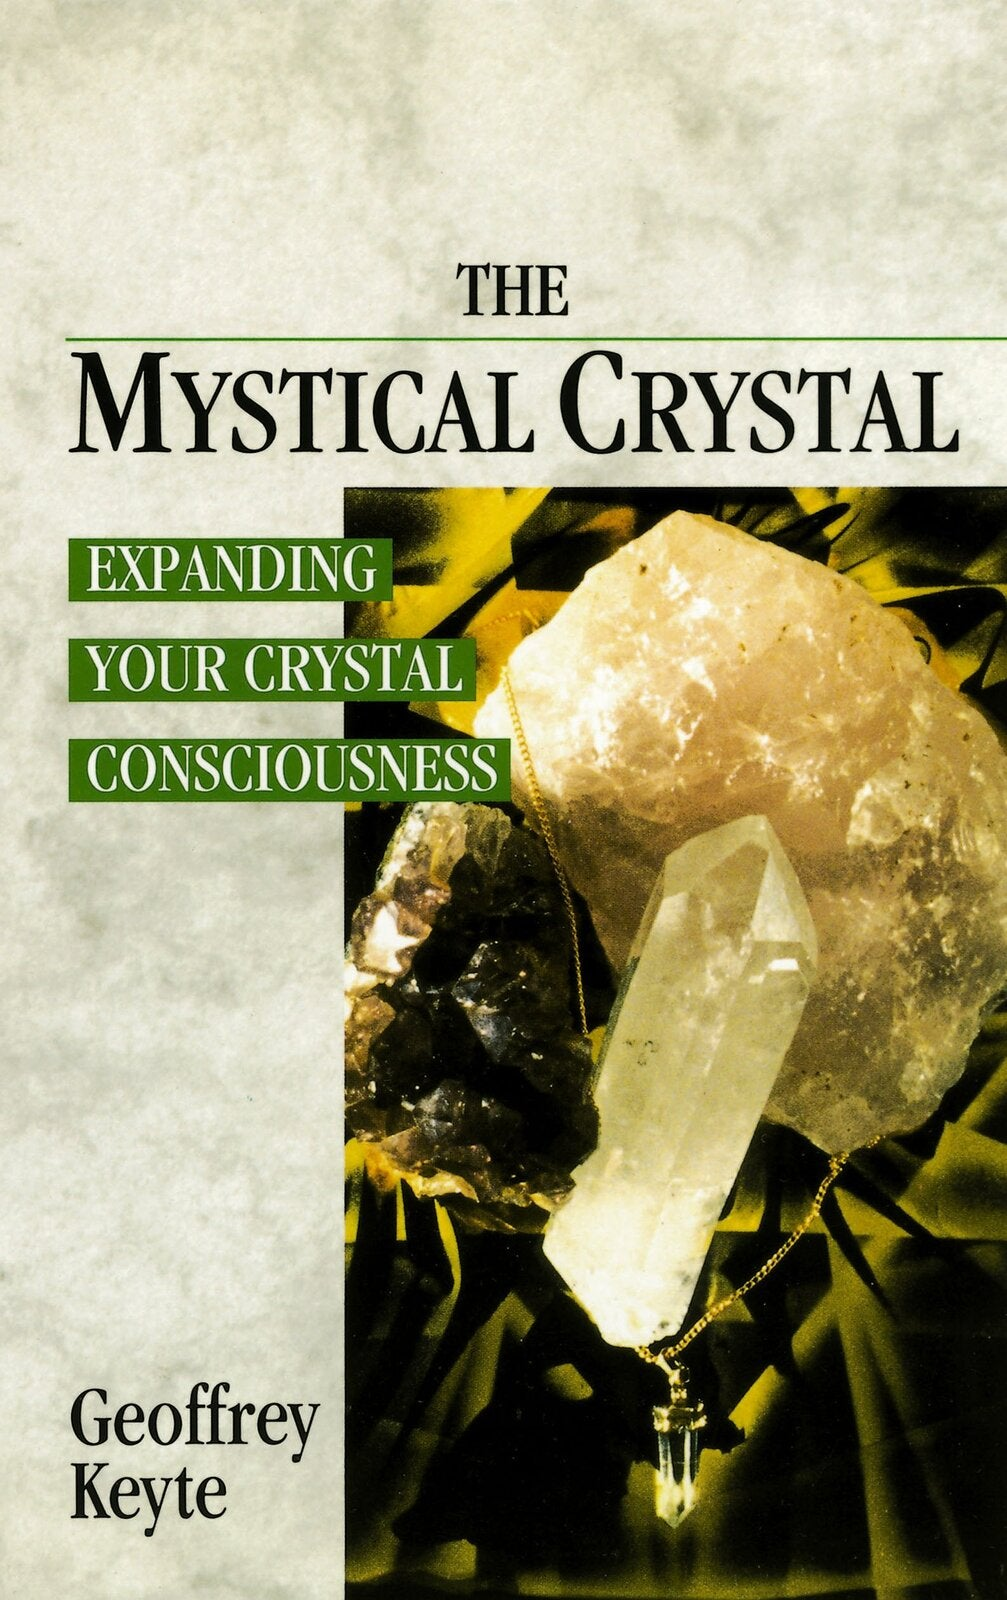 The Mystical Crystal: Expanding Your Crystal Consciousness Paperback Book